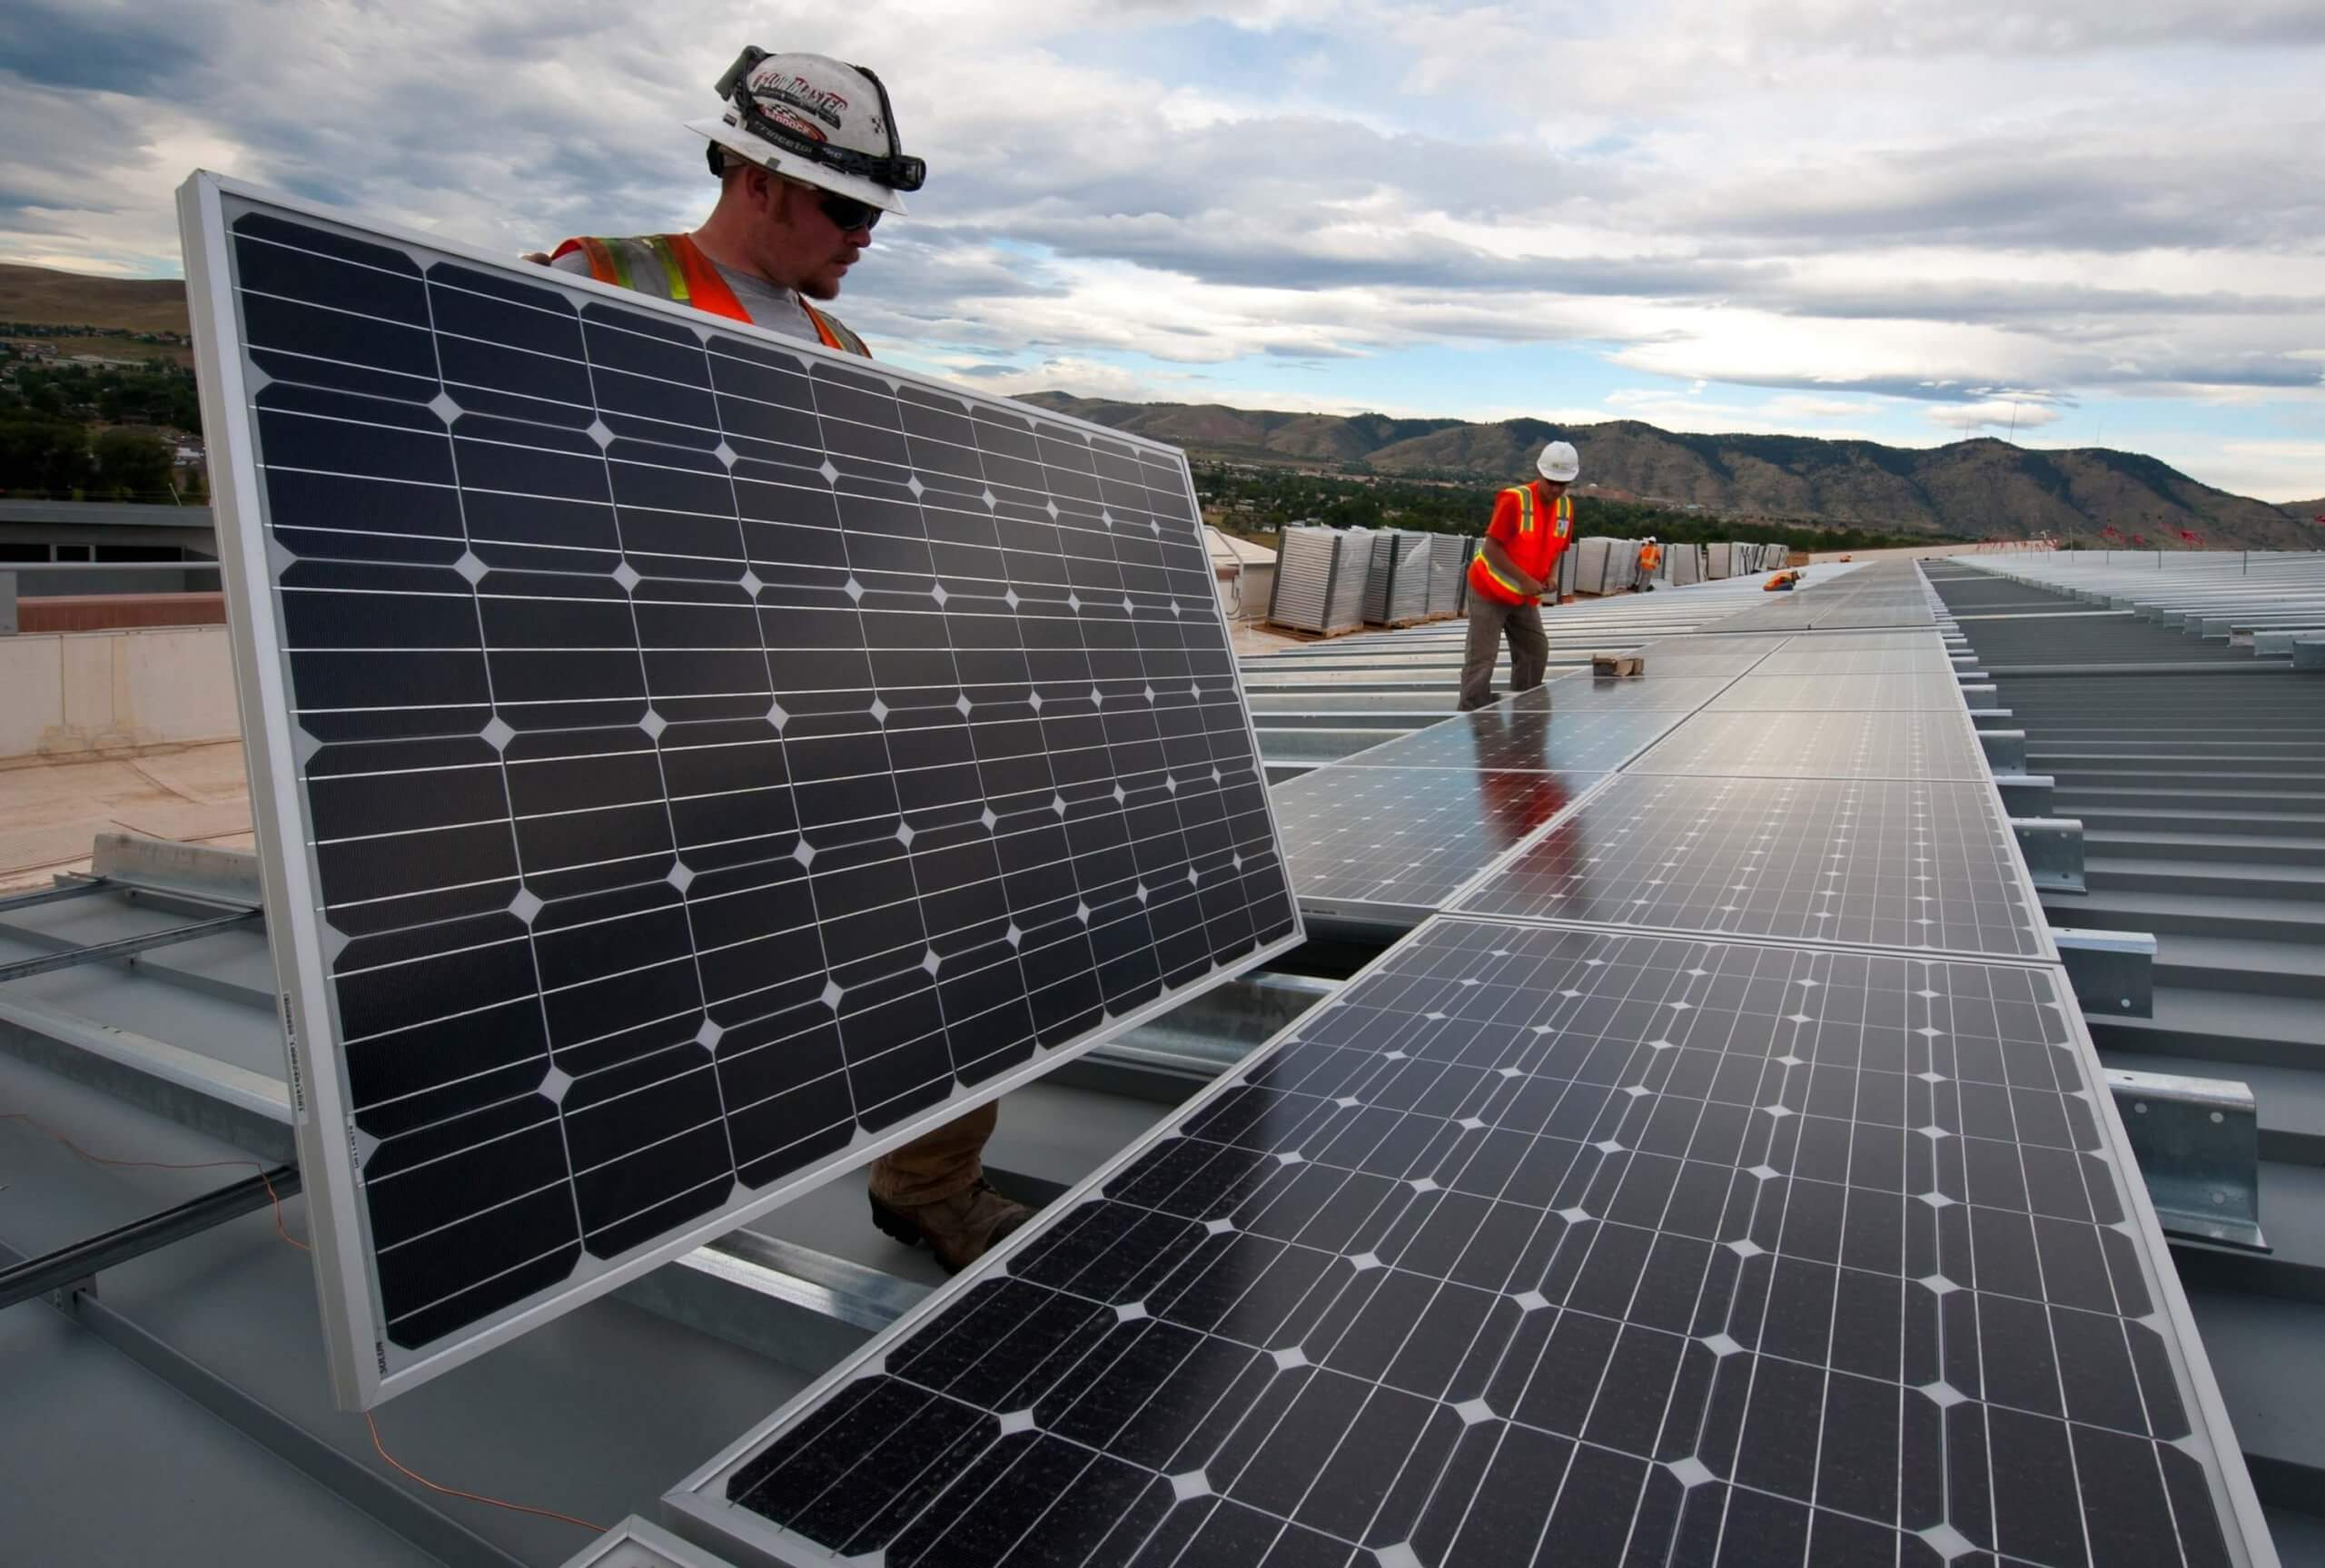 Construction workers putting solar panels on a roof